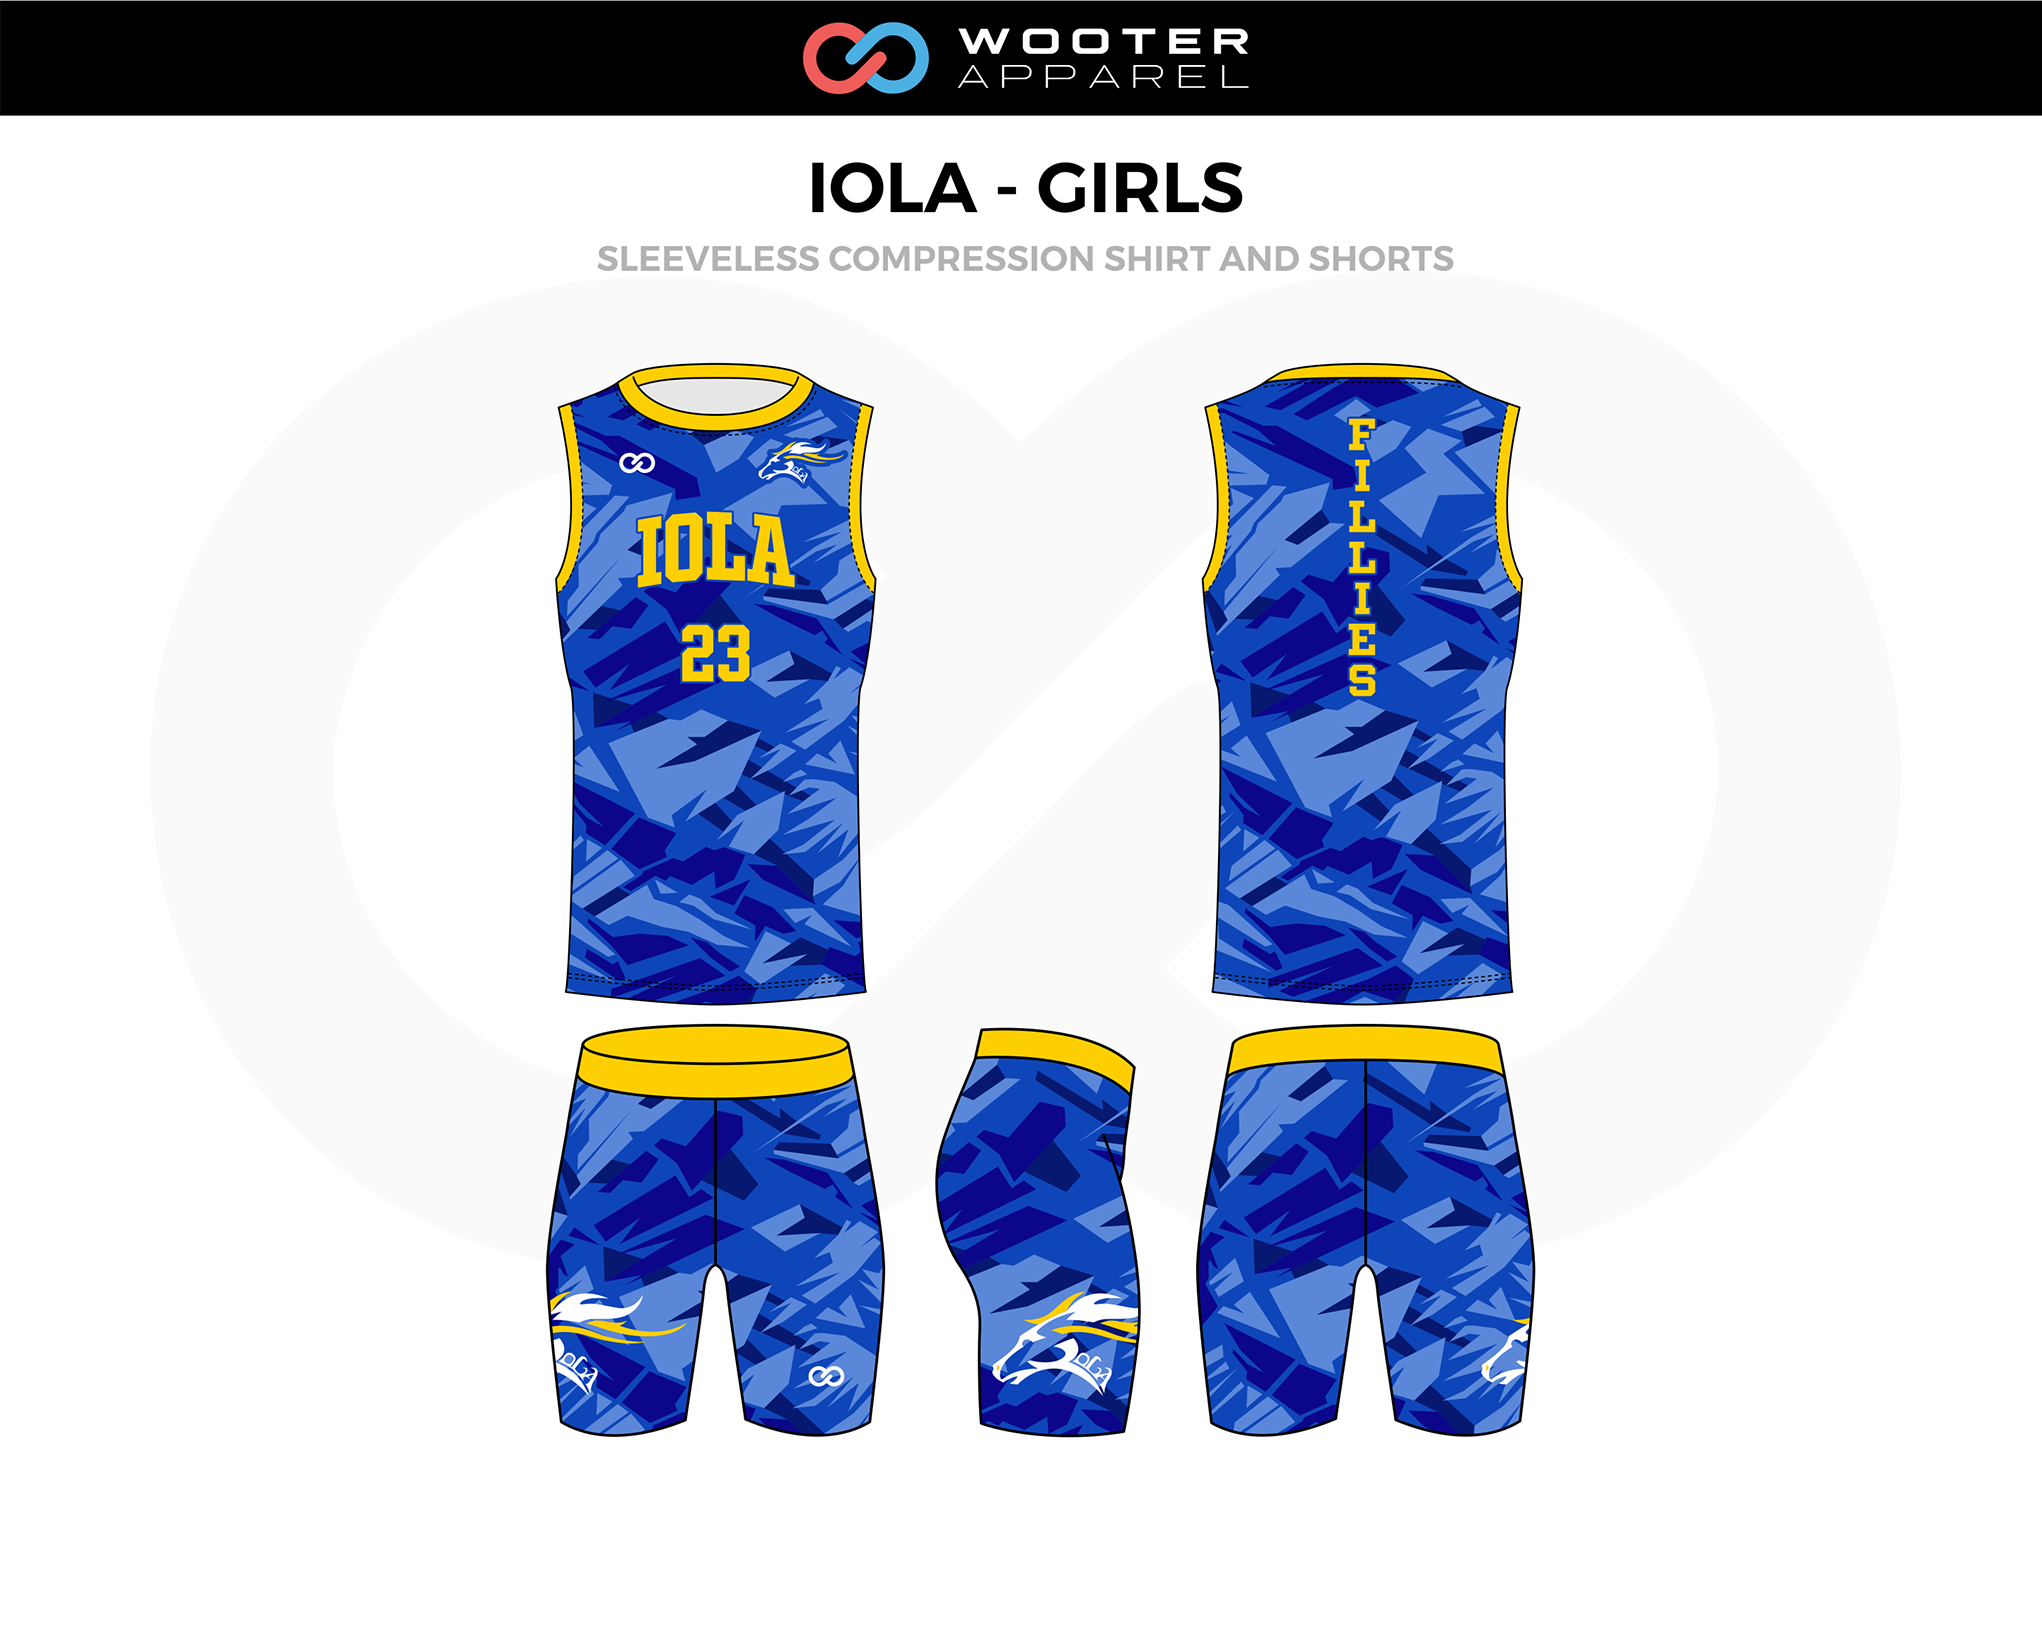 IOLA-GIRLS Blue Yellow Track Sleeveless Compression, Jerseys, and Shorts